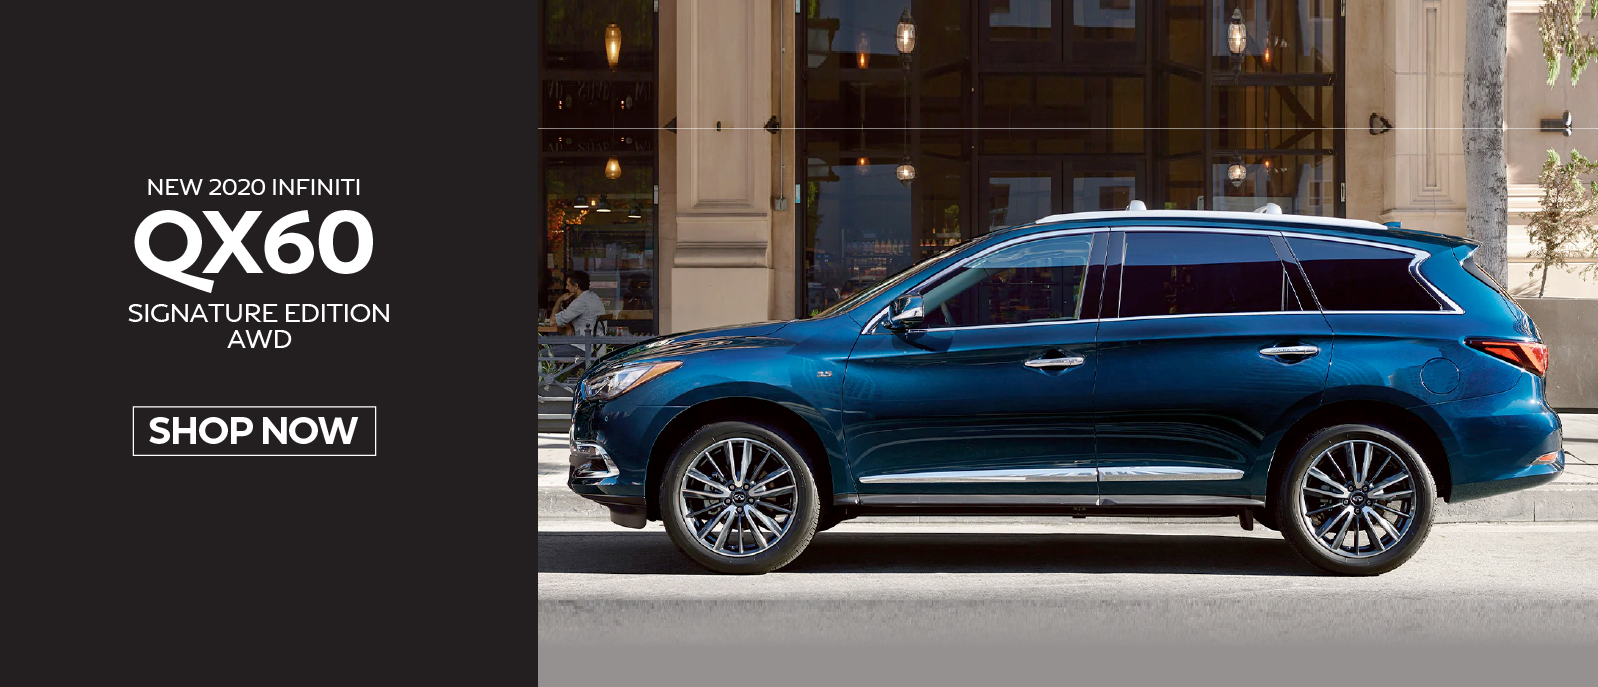 New 2020 INFINITI QX60 Pure AWD Lease for only $399 a mo. for 39 mos.* $5099 due at signing. Click here to begin shopping.